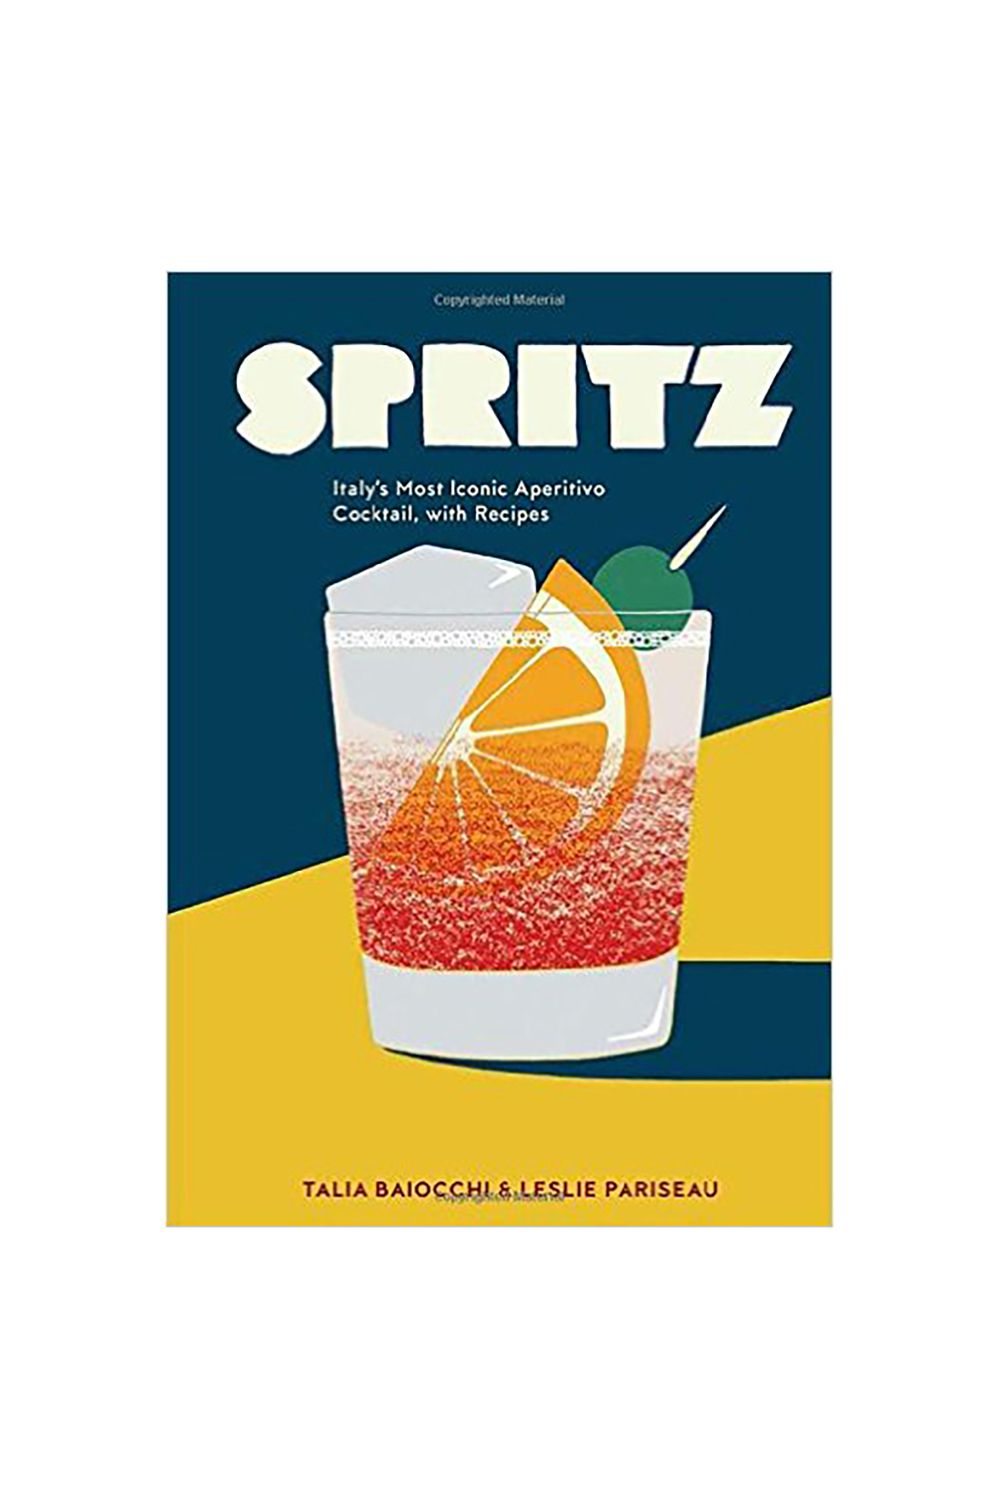 "<p>You'll want to own this new eye-catching cocktail book for multiple reasons: the narrative-driven book traces the origins of the spritz cocktail, it contains several mouth-watering cocktail recipes, and well, it looks so pretty on your living room table, no? </p><p><strong data-redactor-tag=""strong"" data-verified=""redactor""><em data-redactor-tag=""em"" data-verified=""redactor"">Spritz: Italy's Most Iconic Aperitivo Cocktail, with Recipes</em>, $13; <a href=""https://www.amazon.com/Spritz-Italys-Aperitivo-Cocktail-Recipes/dp/1607748851"" target=""_blank"">amazon.com</a>. </strong></p>"